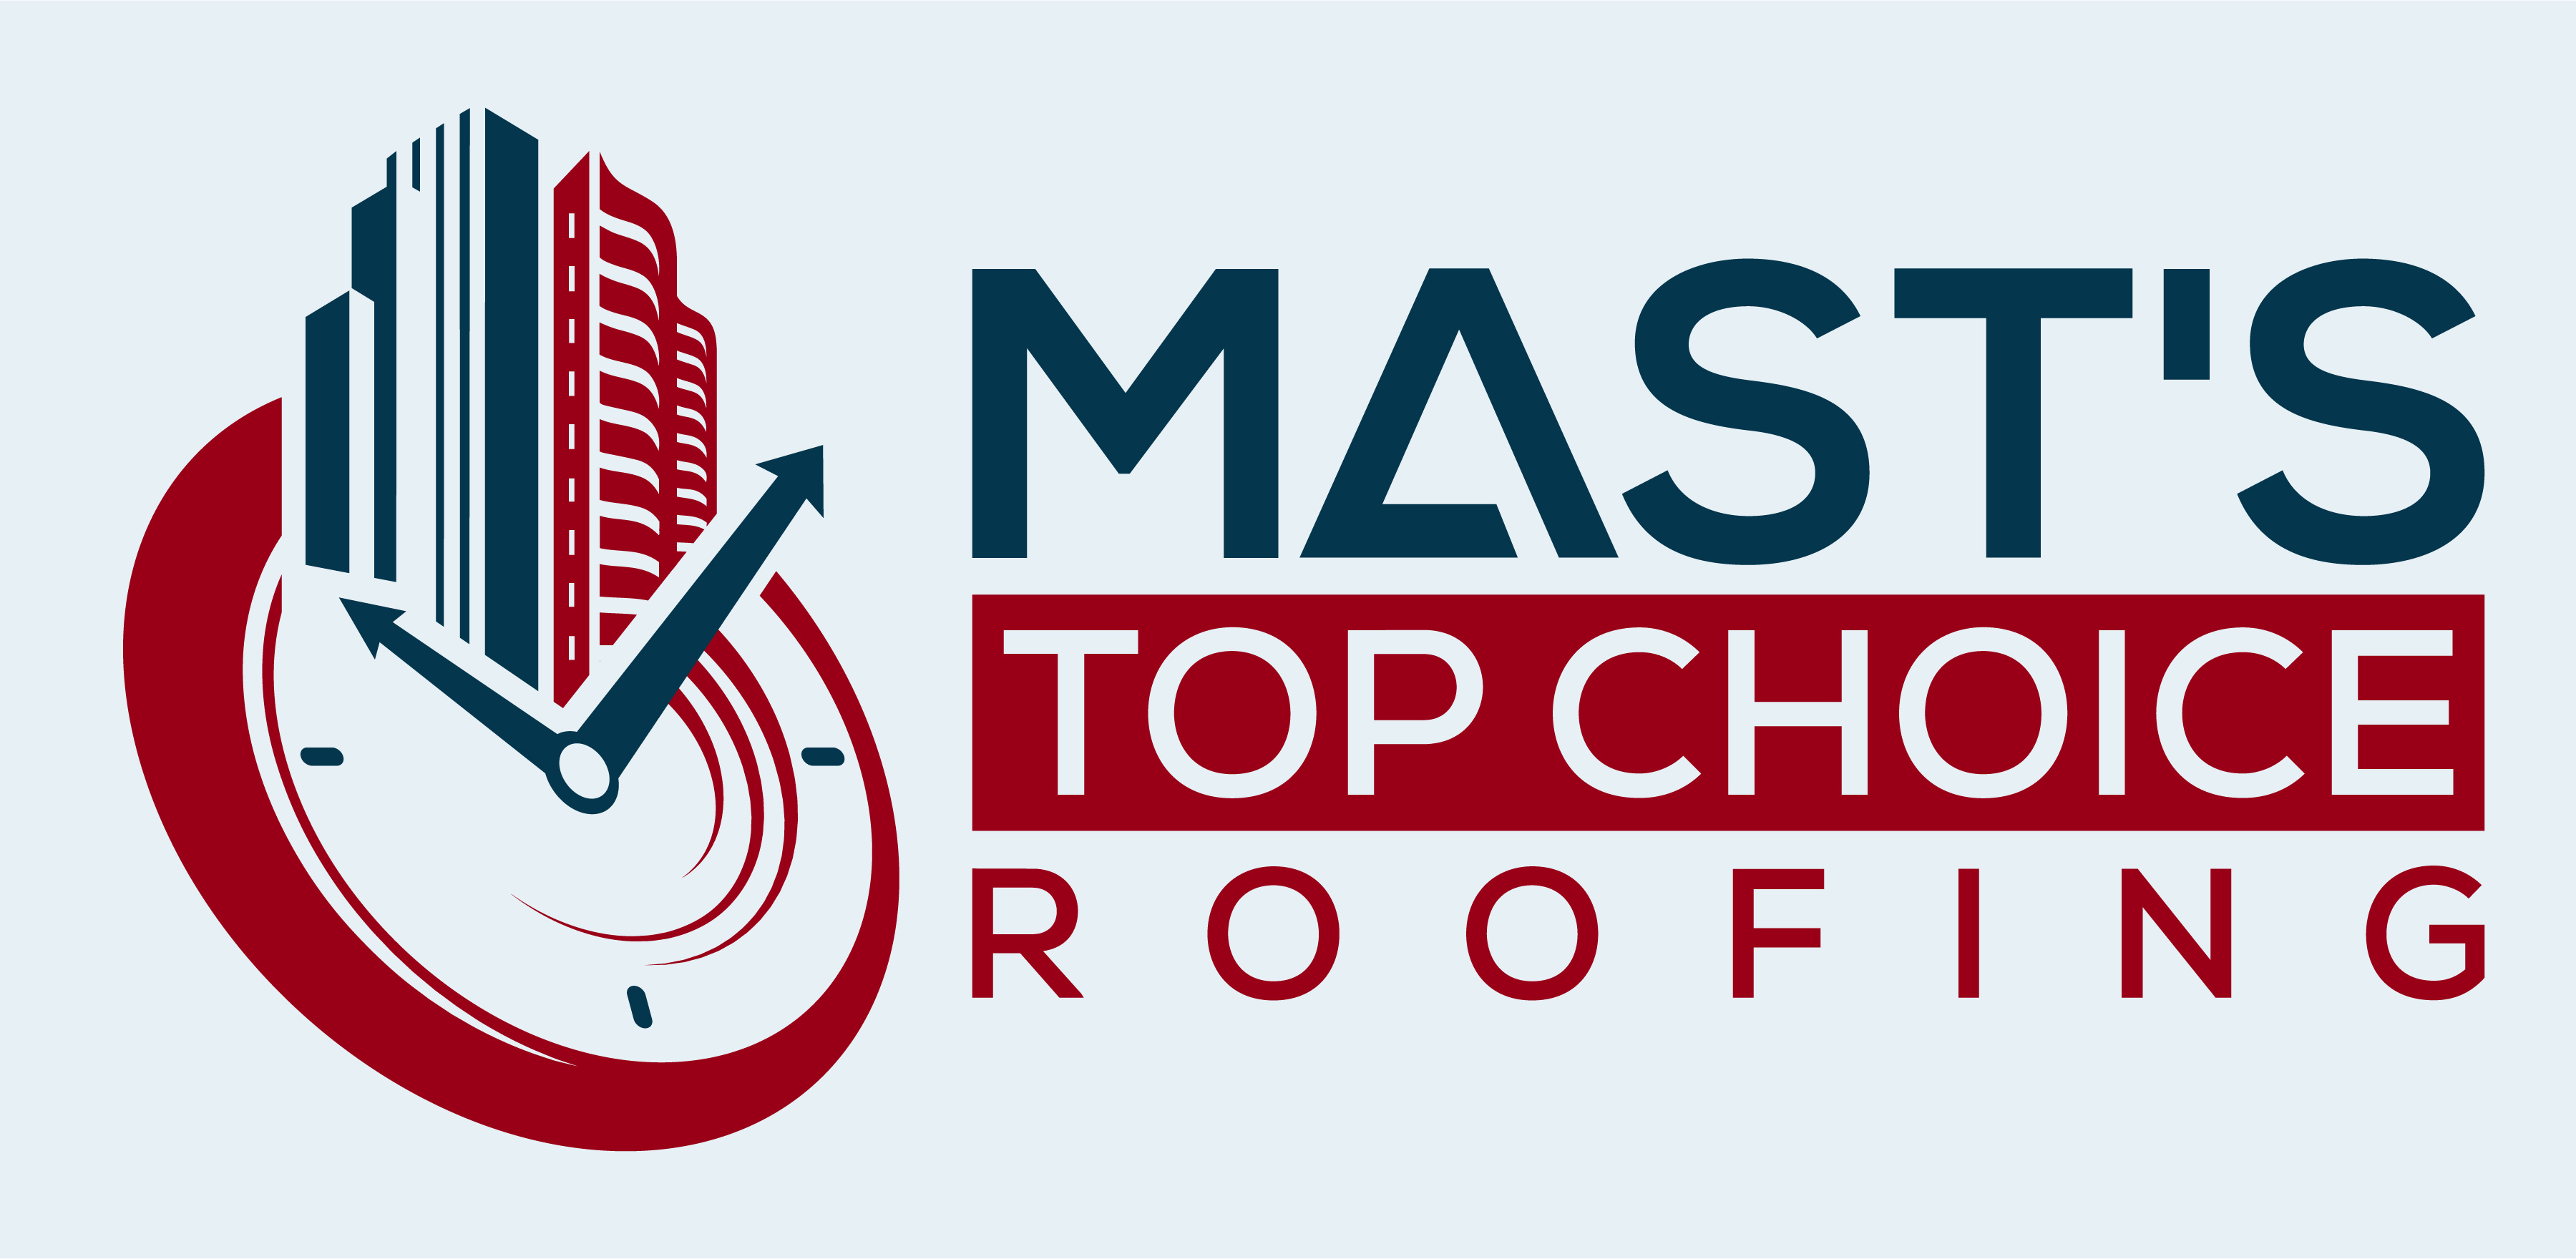 Mast's Top Choice Roofing Mention Reasons People Should Work with a Specialized Commercial Roofer for Commercial Roofing Needs